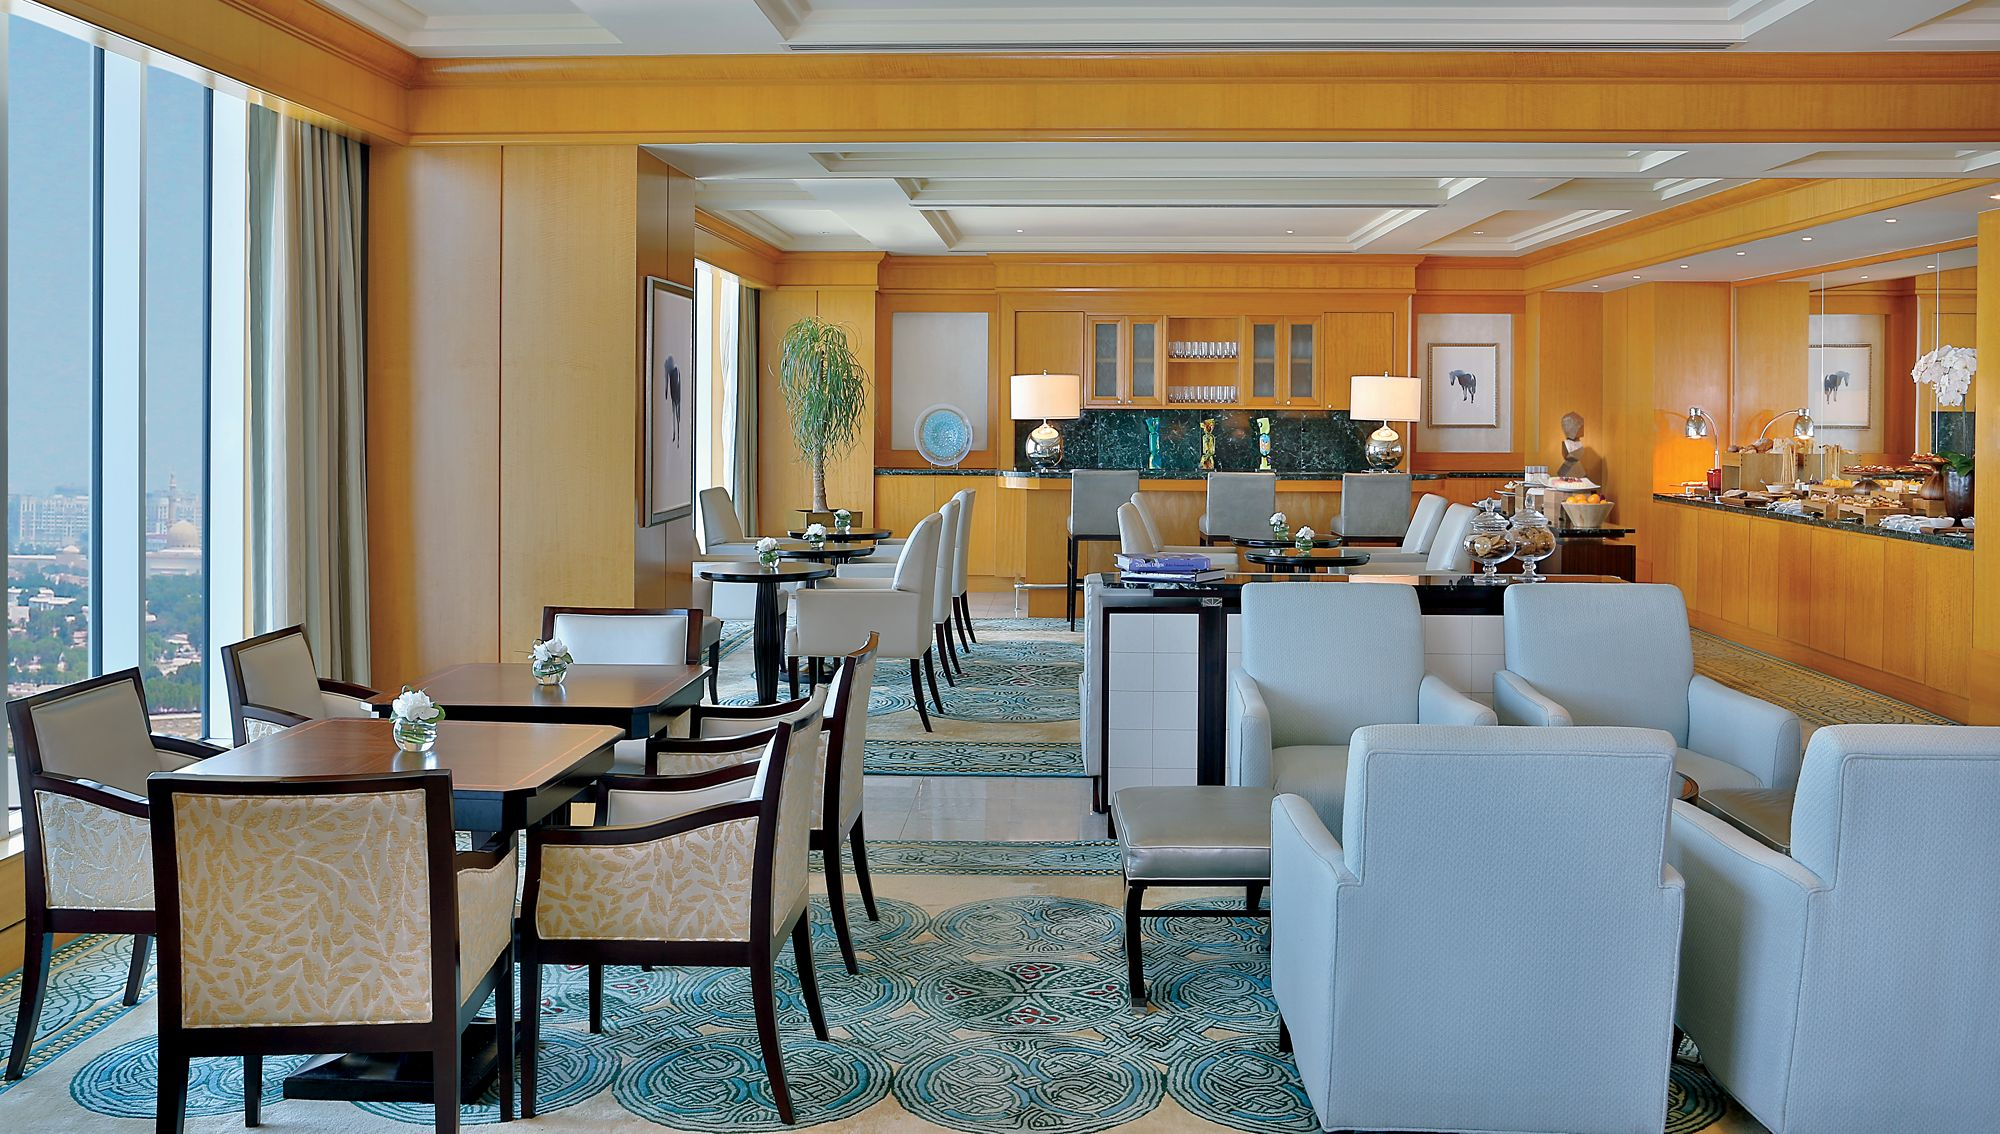 Club Lounge featuring floor-to-ceiling skyline views, flexible seating, honey-colored wood accents and culinary presentations